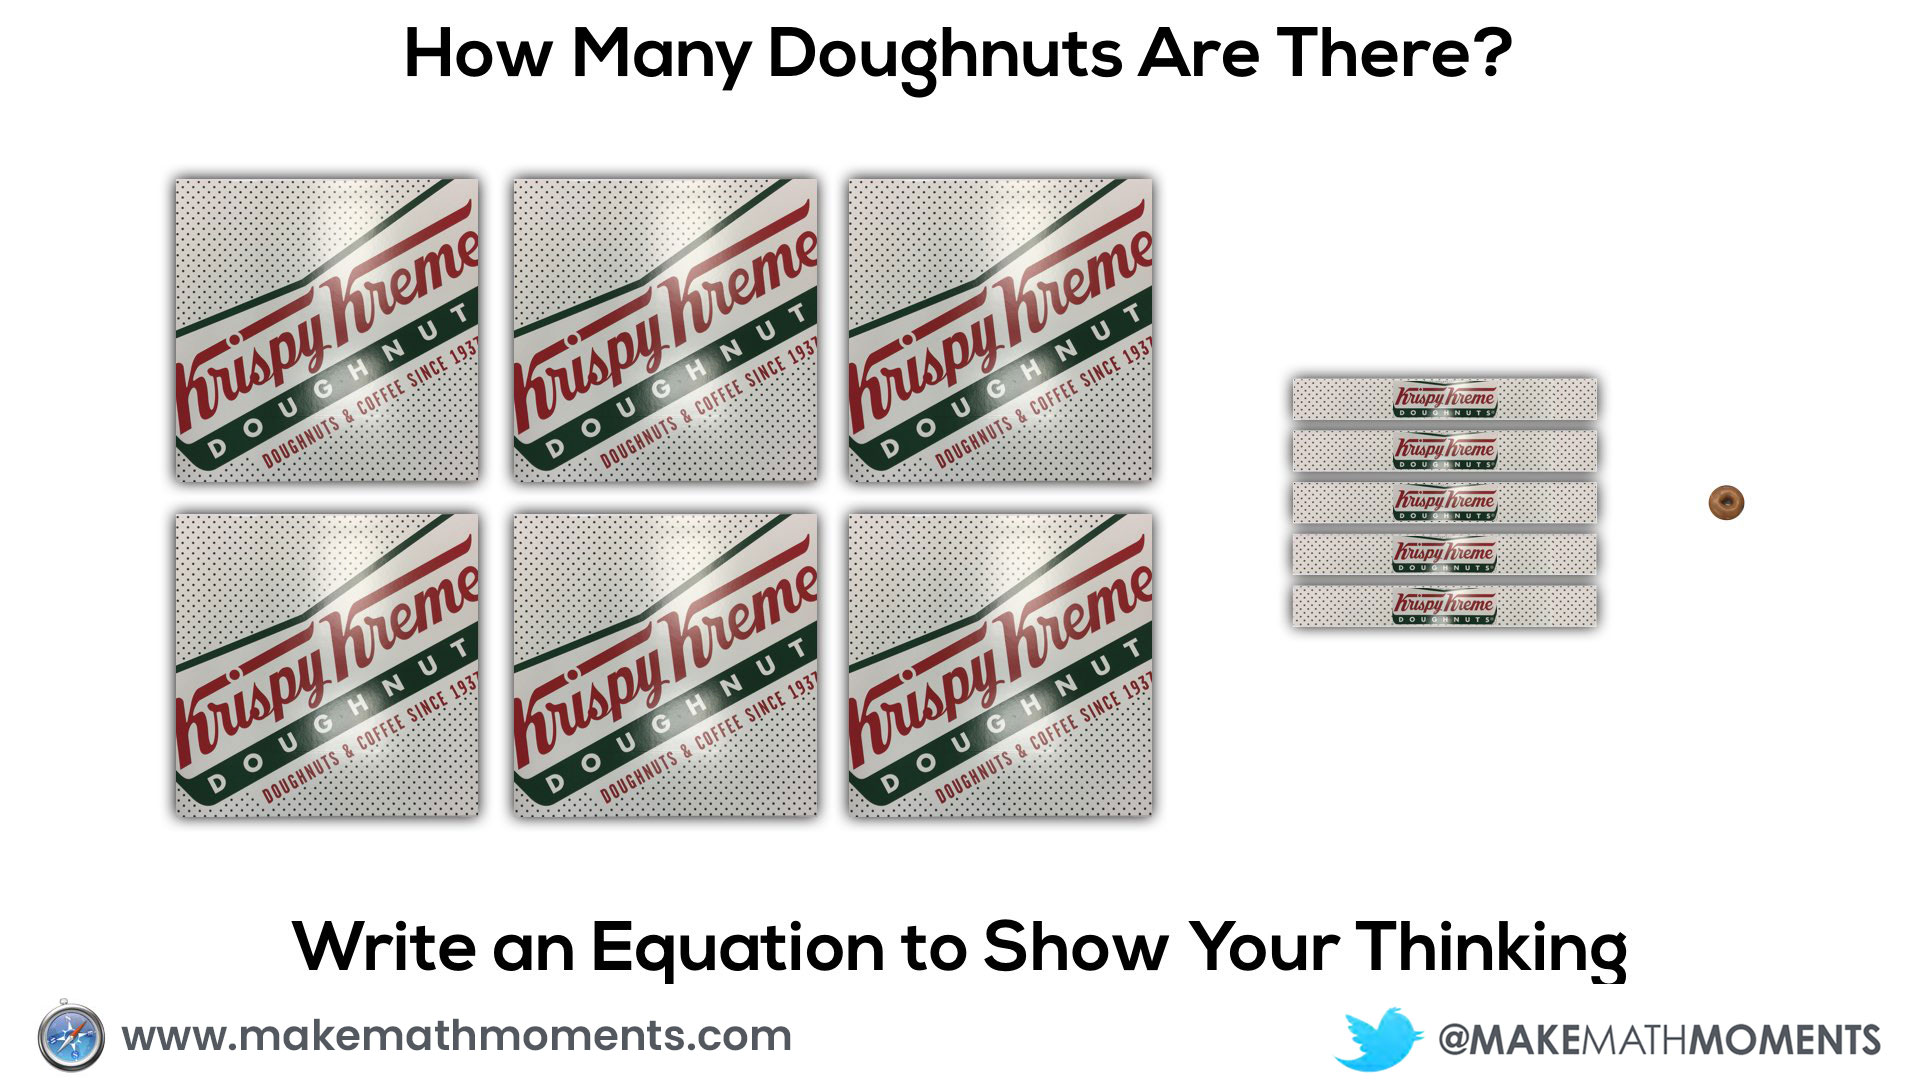 Write an equation to show your thinking